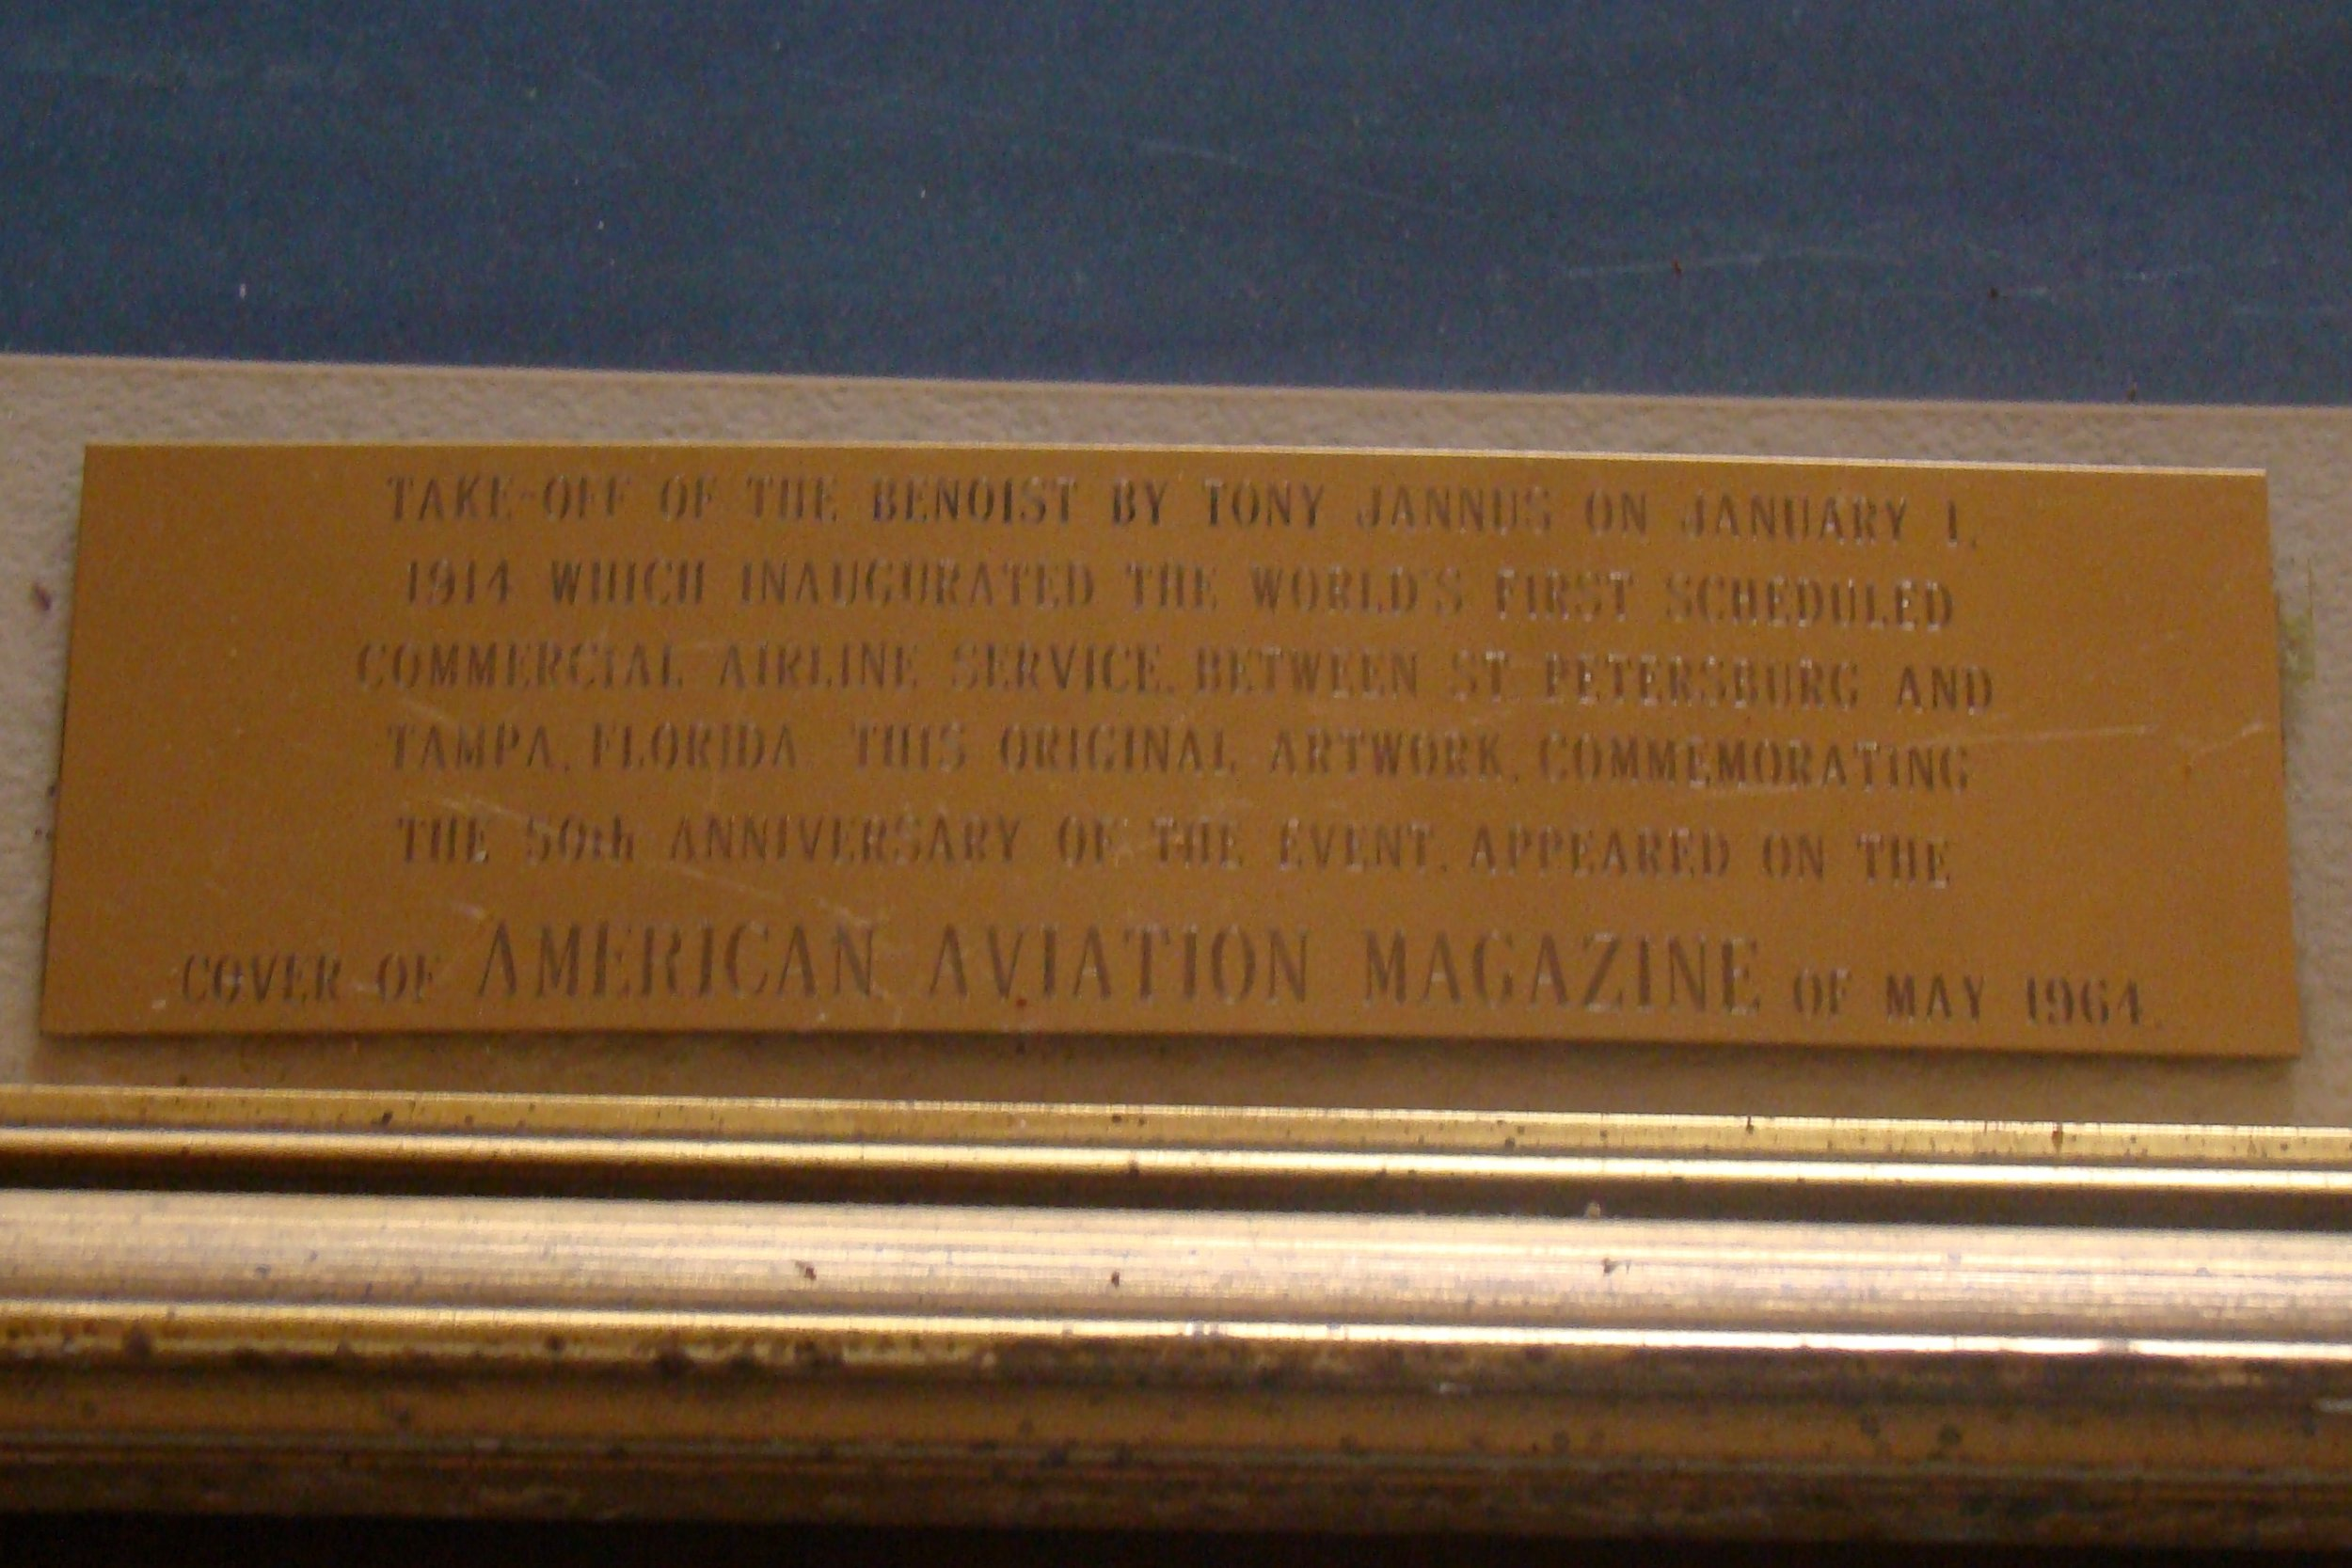 Krusen Picture, Brass Plate on Benoist,Cover of American Aviation Magazine, May 1964.JPG